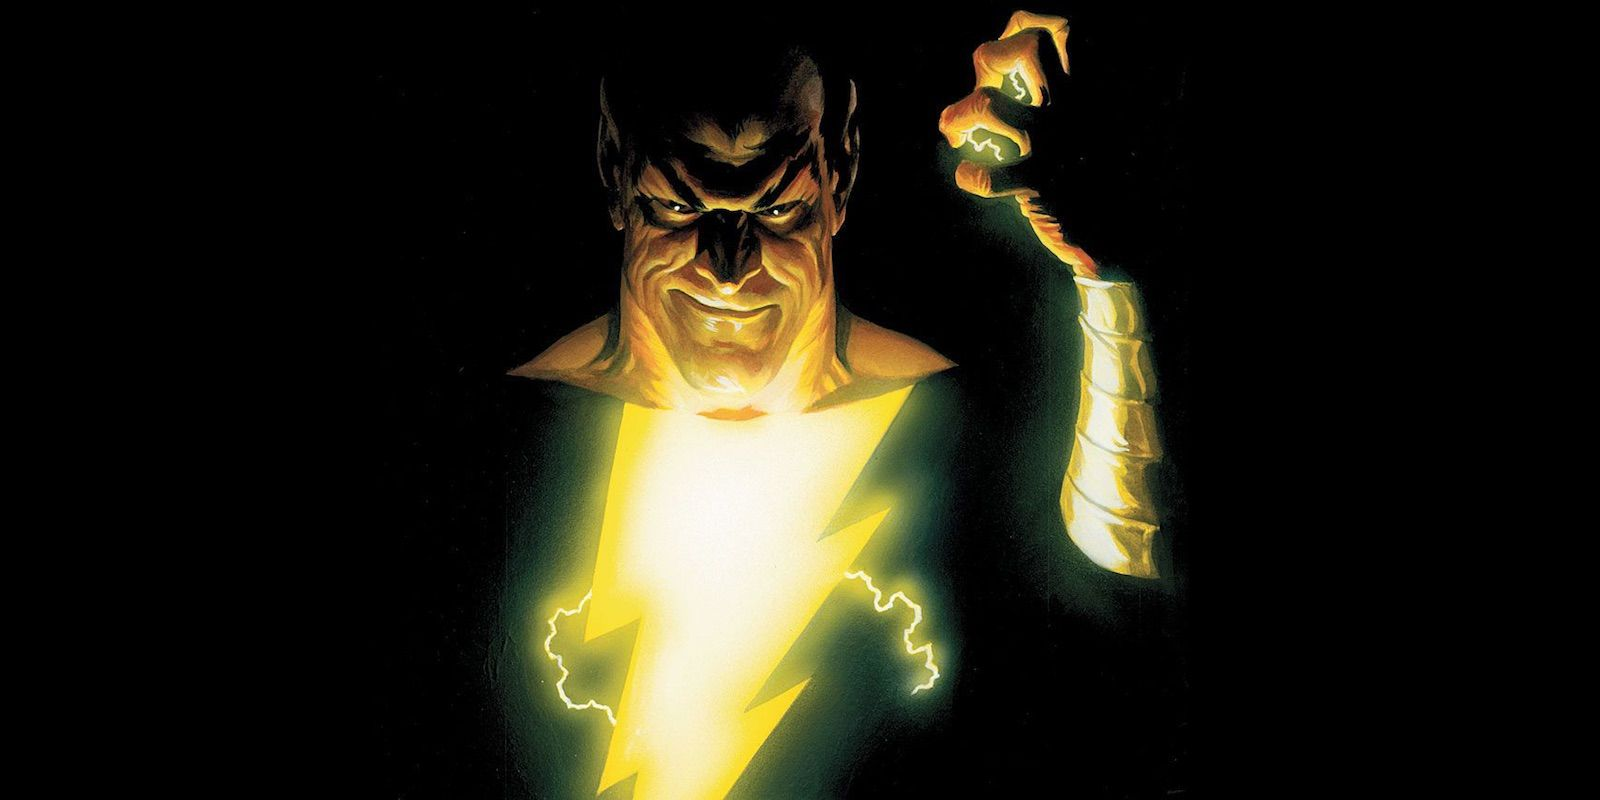 DC's Black Adam Movie Gets Official 2021 Release Date (& First Image)